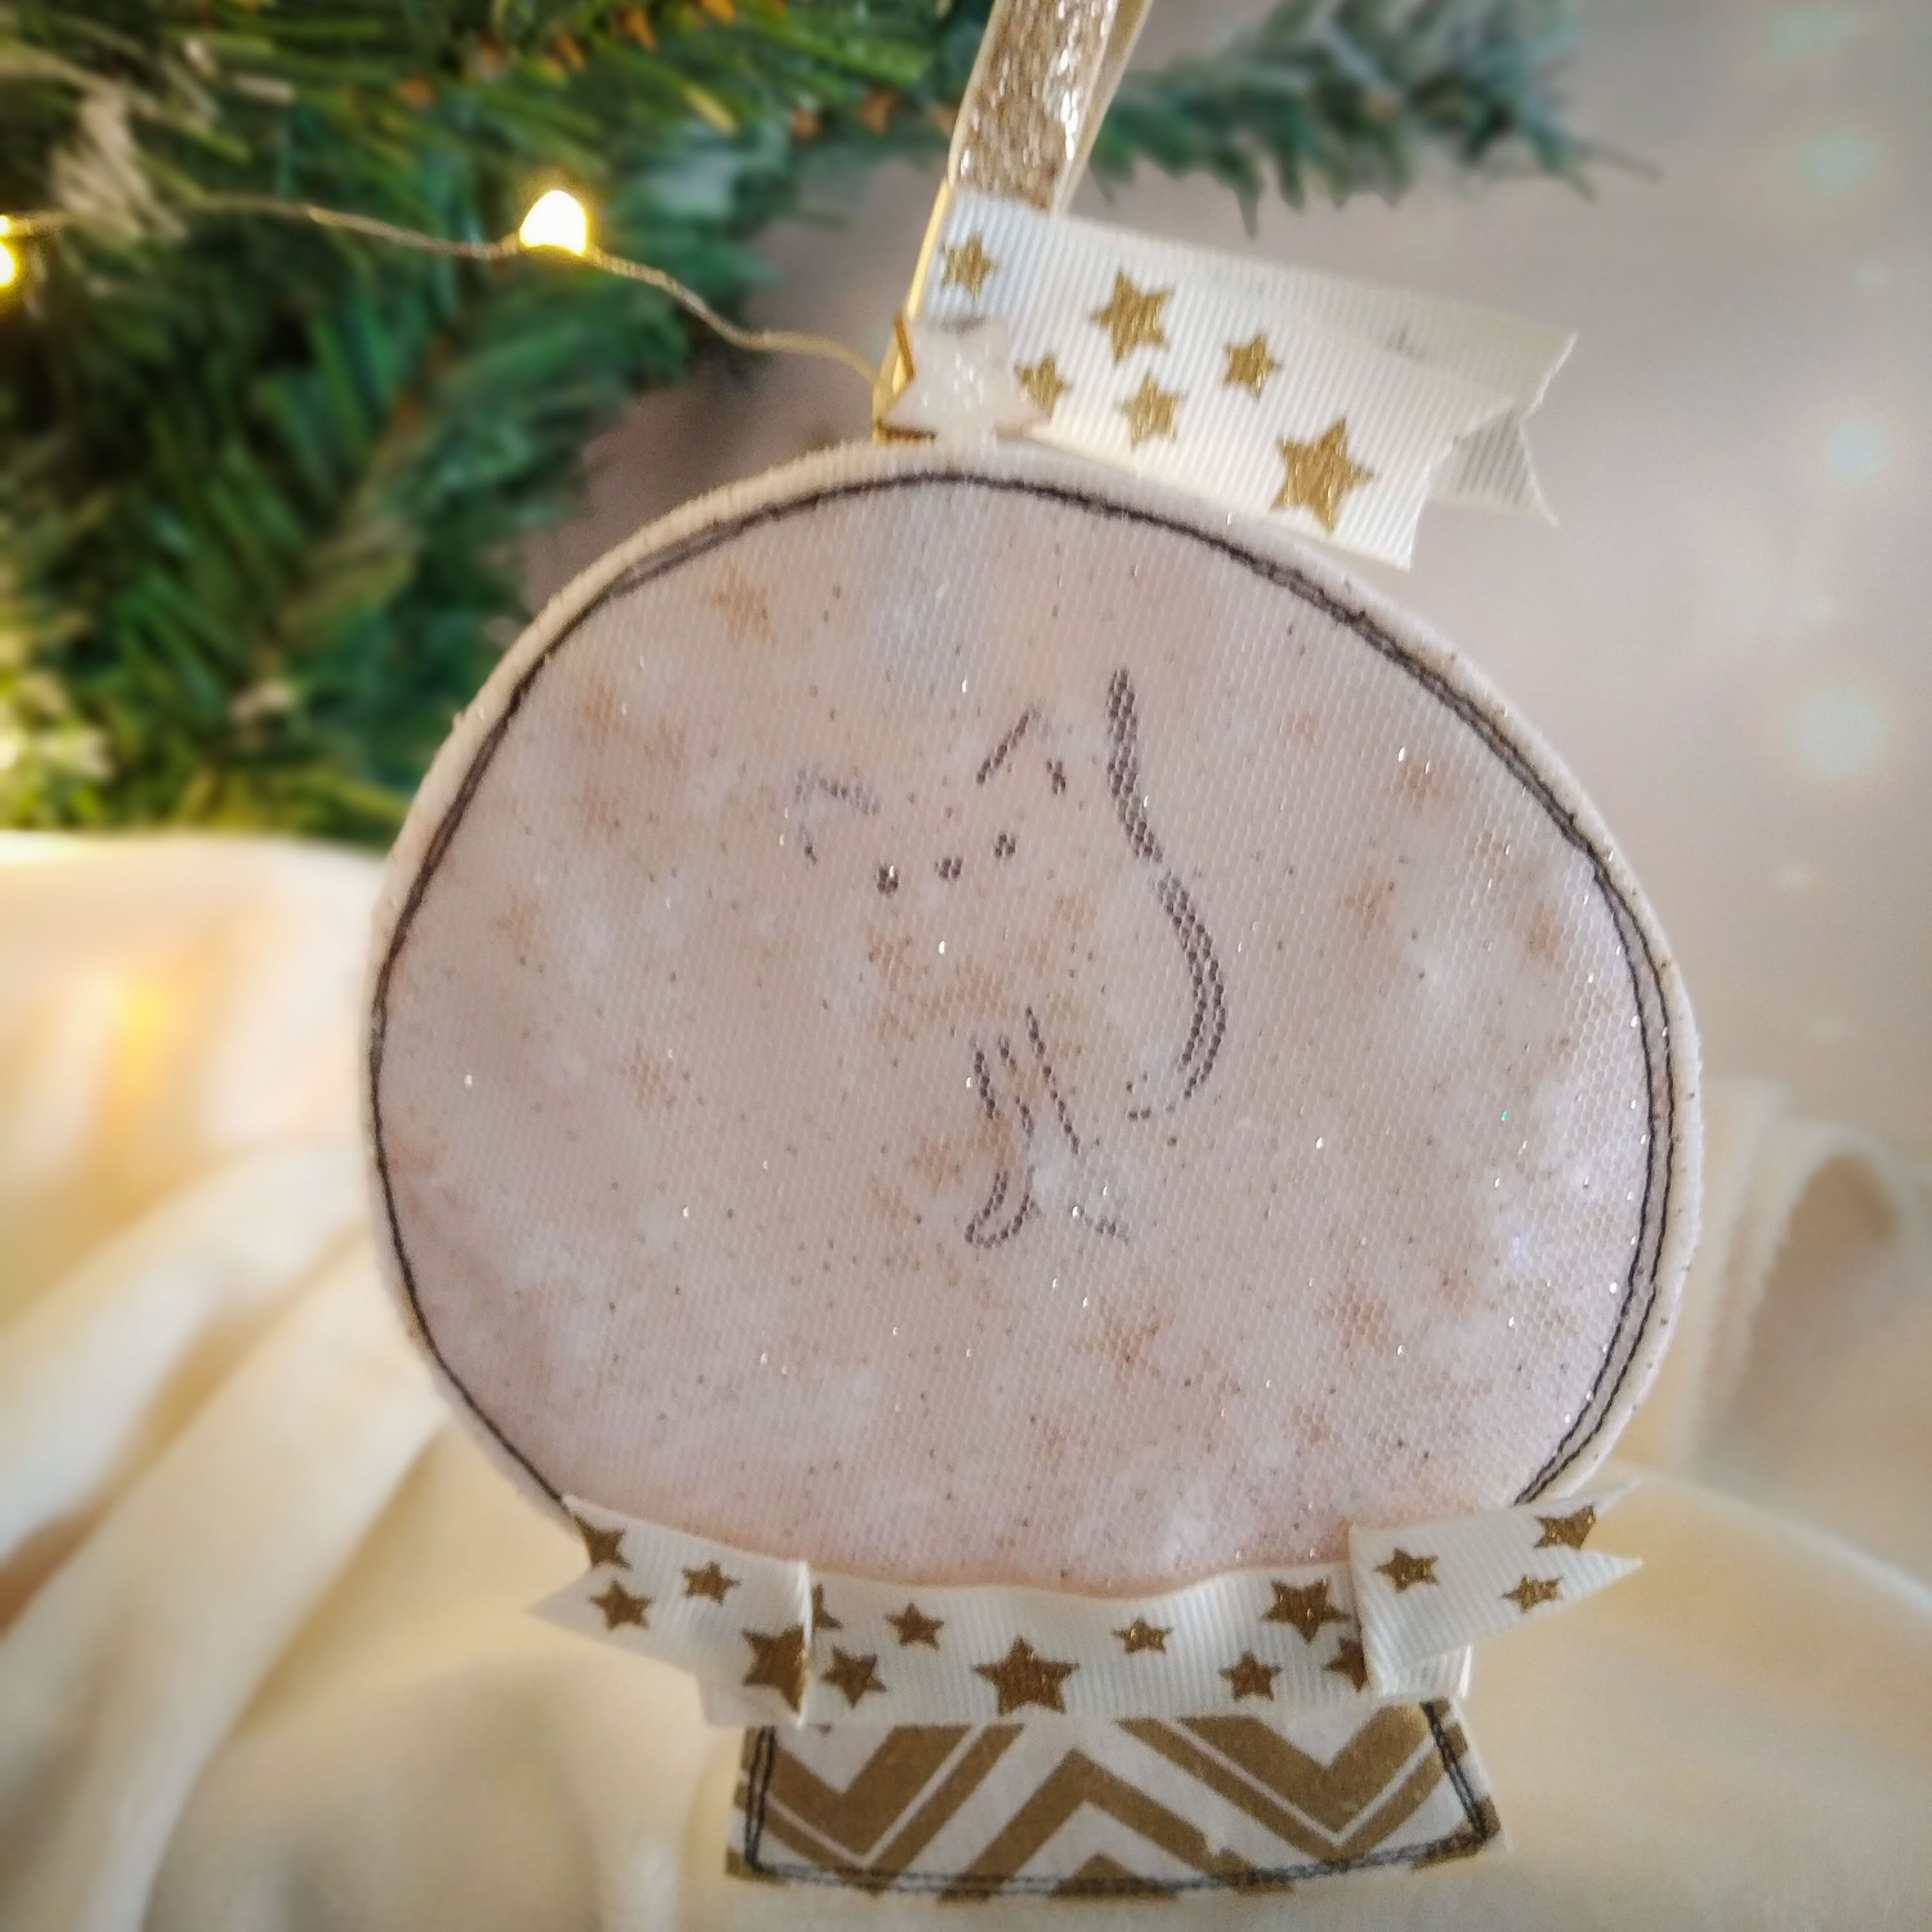 Christmas Snow Globe Fabric Ornament Little Kitten Snow Globe Cute Christmas Tree Ornament Unique Christmas Tree Decor Christmas Gift Christmas Tree Decorations Cute Christmas Tree Christmas Snow Globes